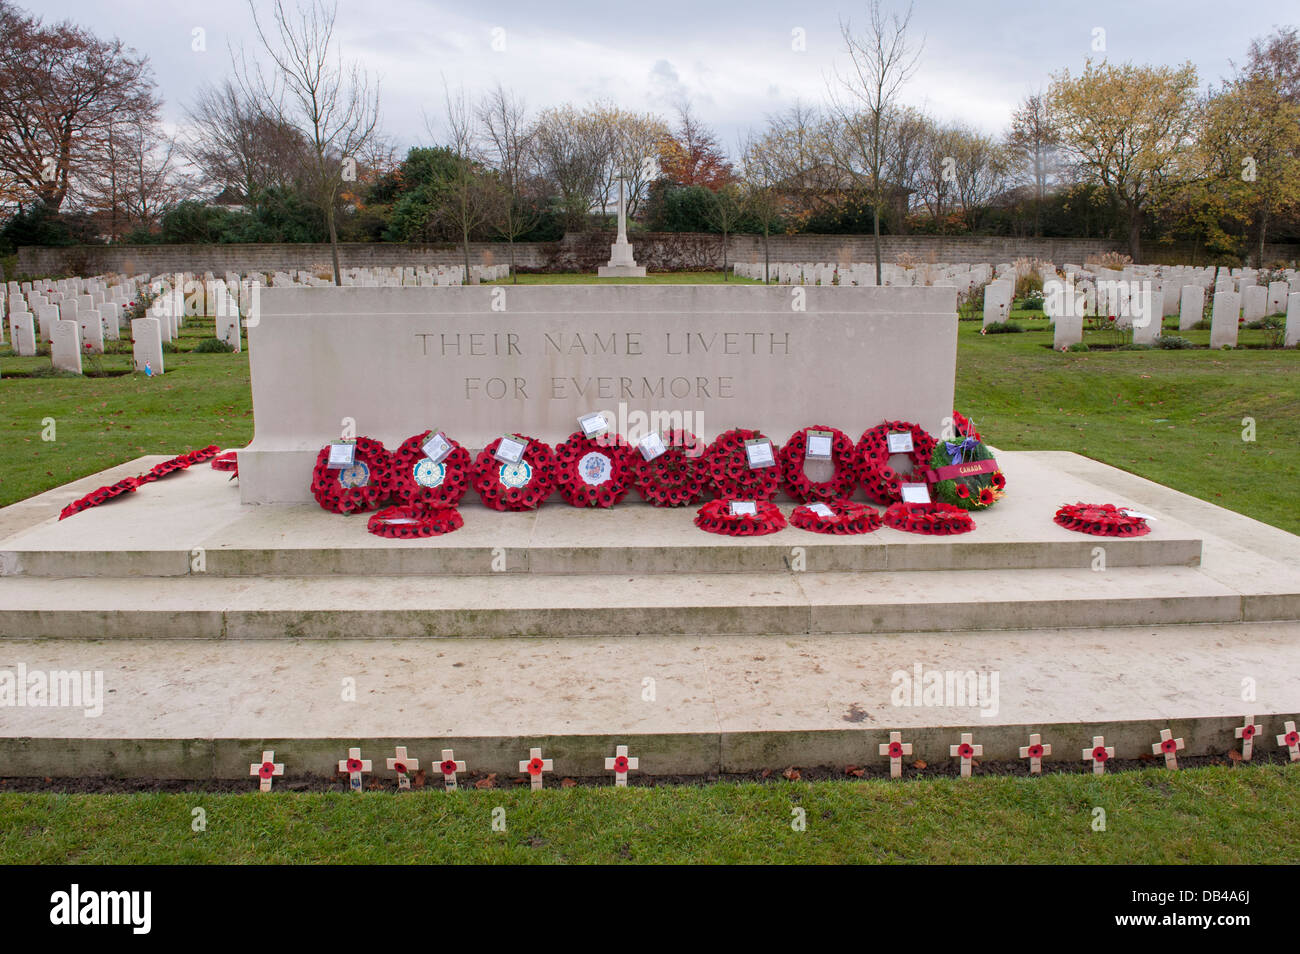 Rows of war graves & circular red poppy wreaths on Stone of Remembrance after ceremony - Stonefall Cemetery, Harrogate, Stock Photo